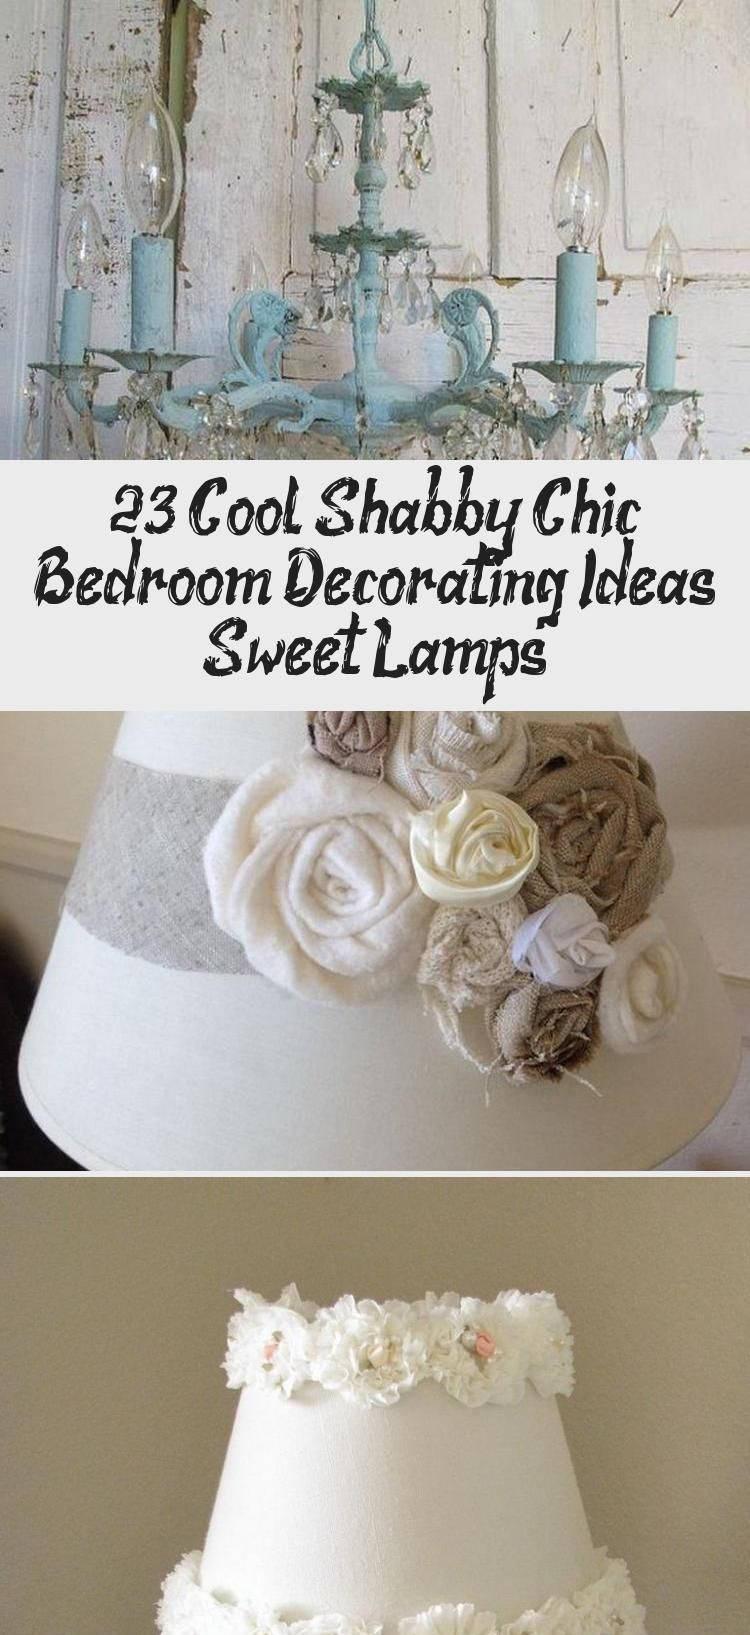 23+ Cool Shabby Chic Bedroom Decorating Ideas Sweet Lamps - Ruby's Blog -  23+ Cool Shabby Chic Bedroom Decorating Ideas Sweet Lamps #lampdesign #bedroomlighting #bedroomdeco - #Bedroom #Blog #Chic #Cool #Decorating #Ideas #Lamps #Rubys #Shabby #shabbychicbedroomsdecoratingideas #shabbychicbedroomsgirls #Sweet